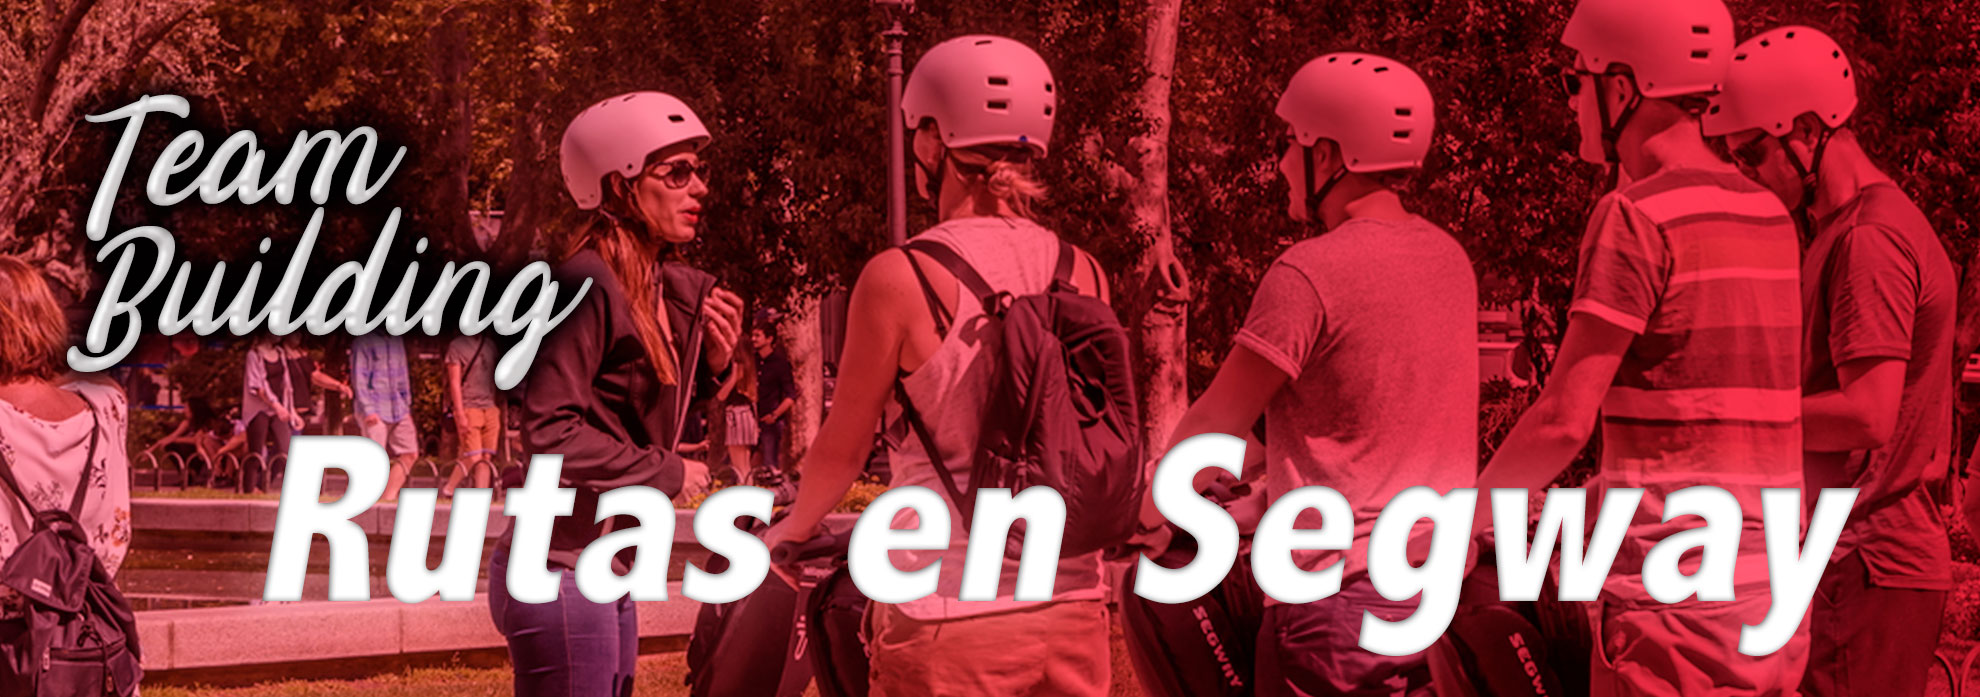 team building, rutas en segway